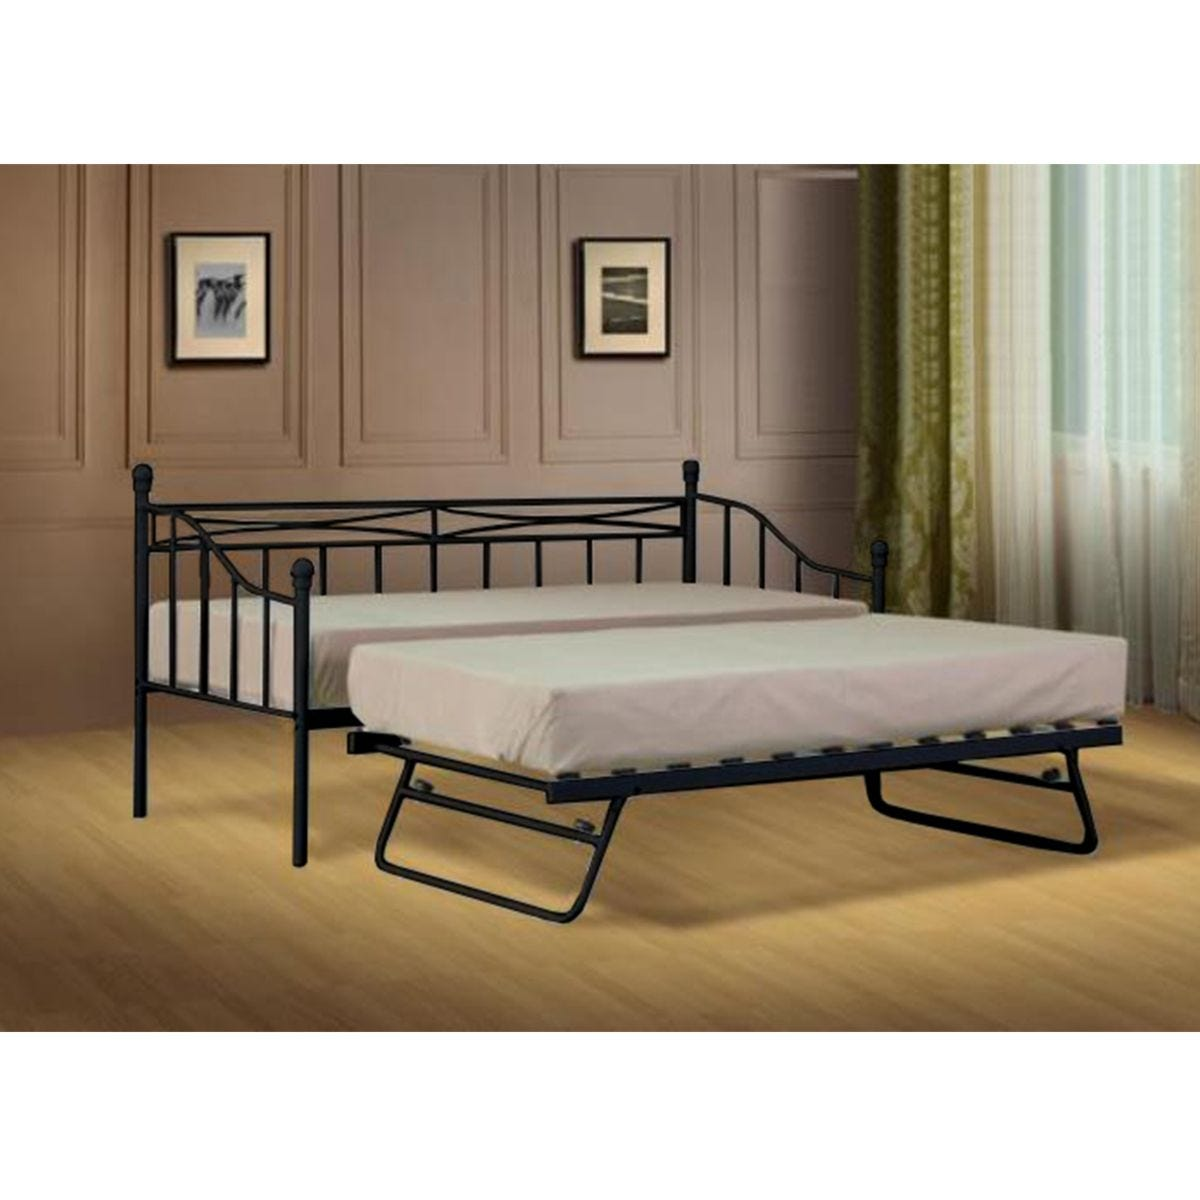 Silvana Single Day Bed Without Trundle - Black